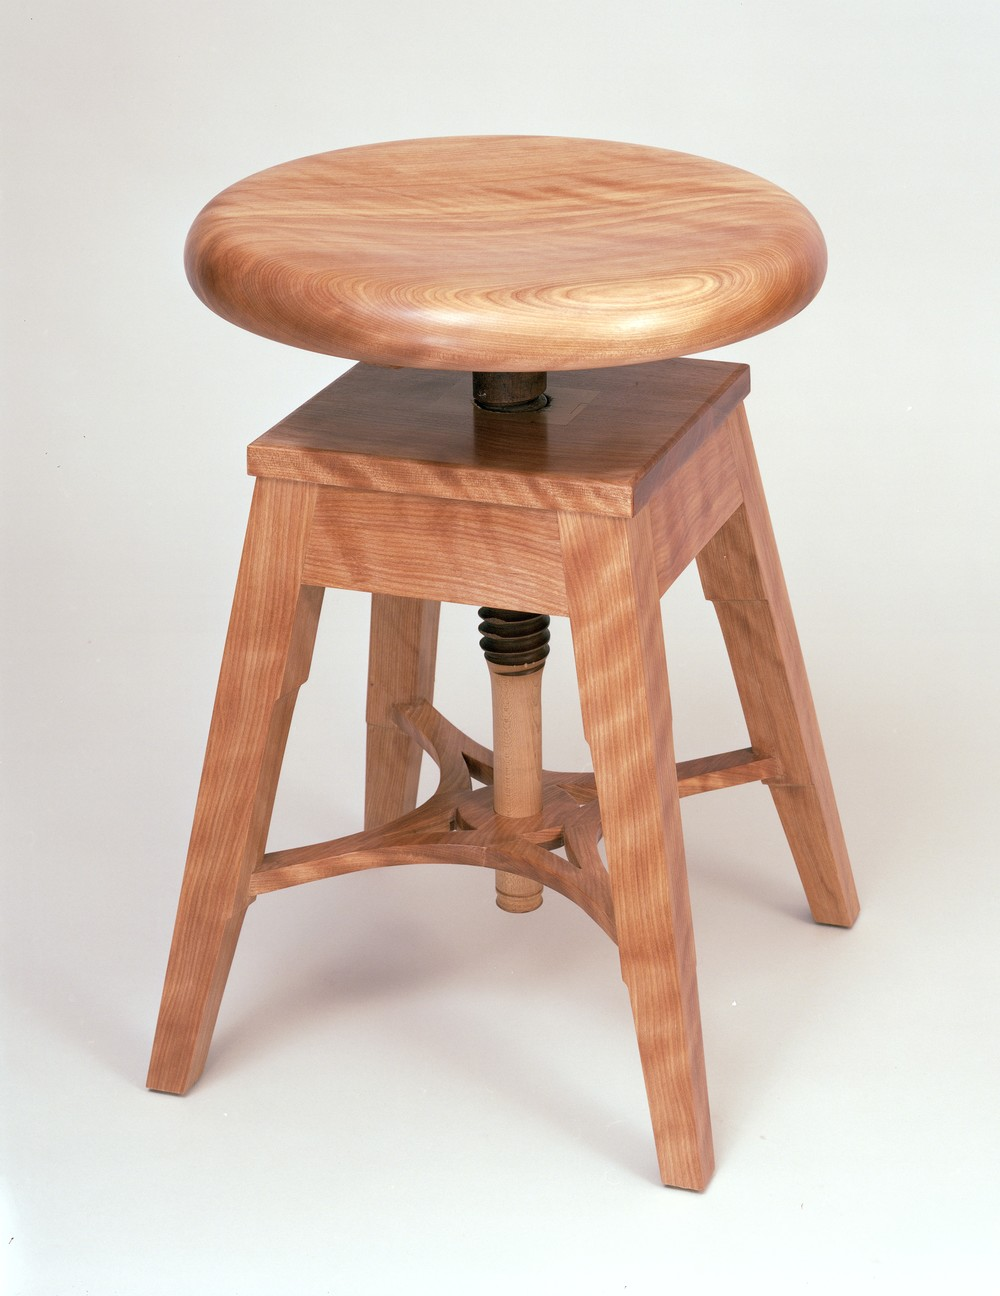 Charming Meredith Hart, Piano Stool 1x 6 22 13